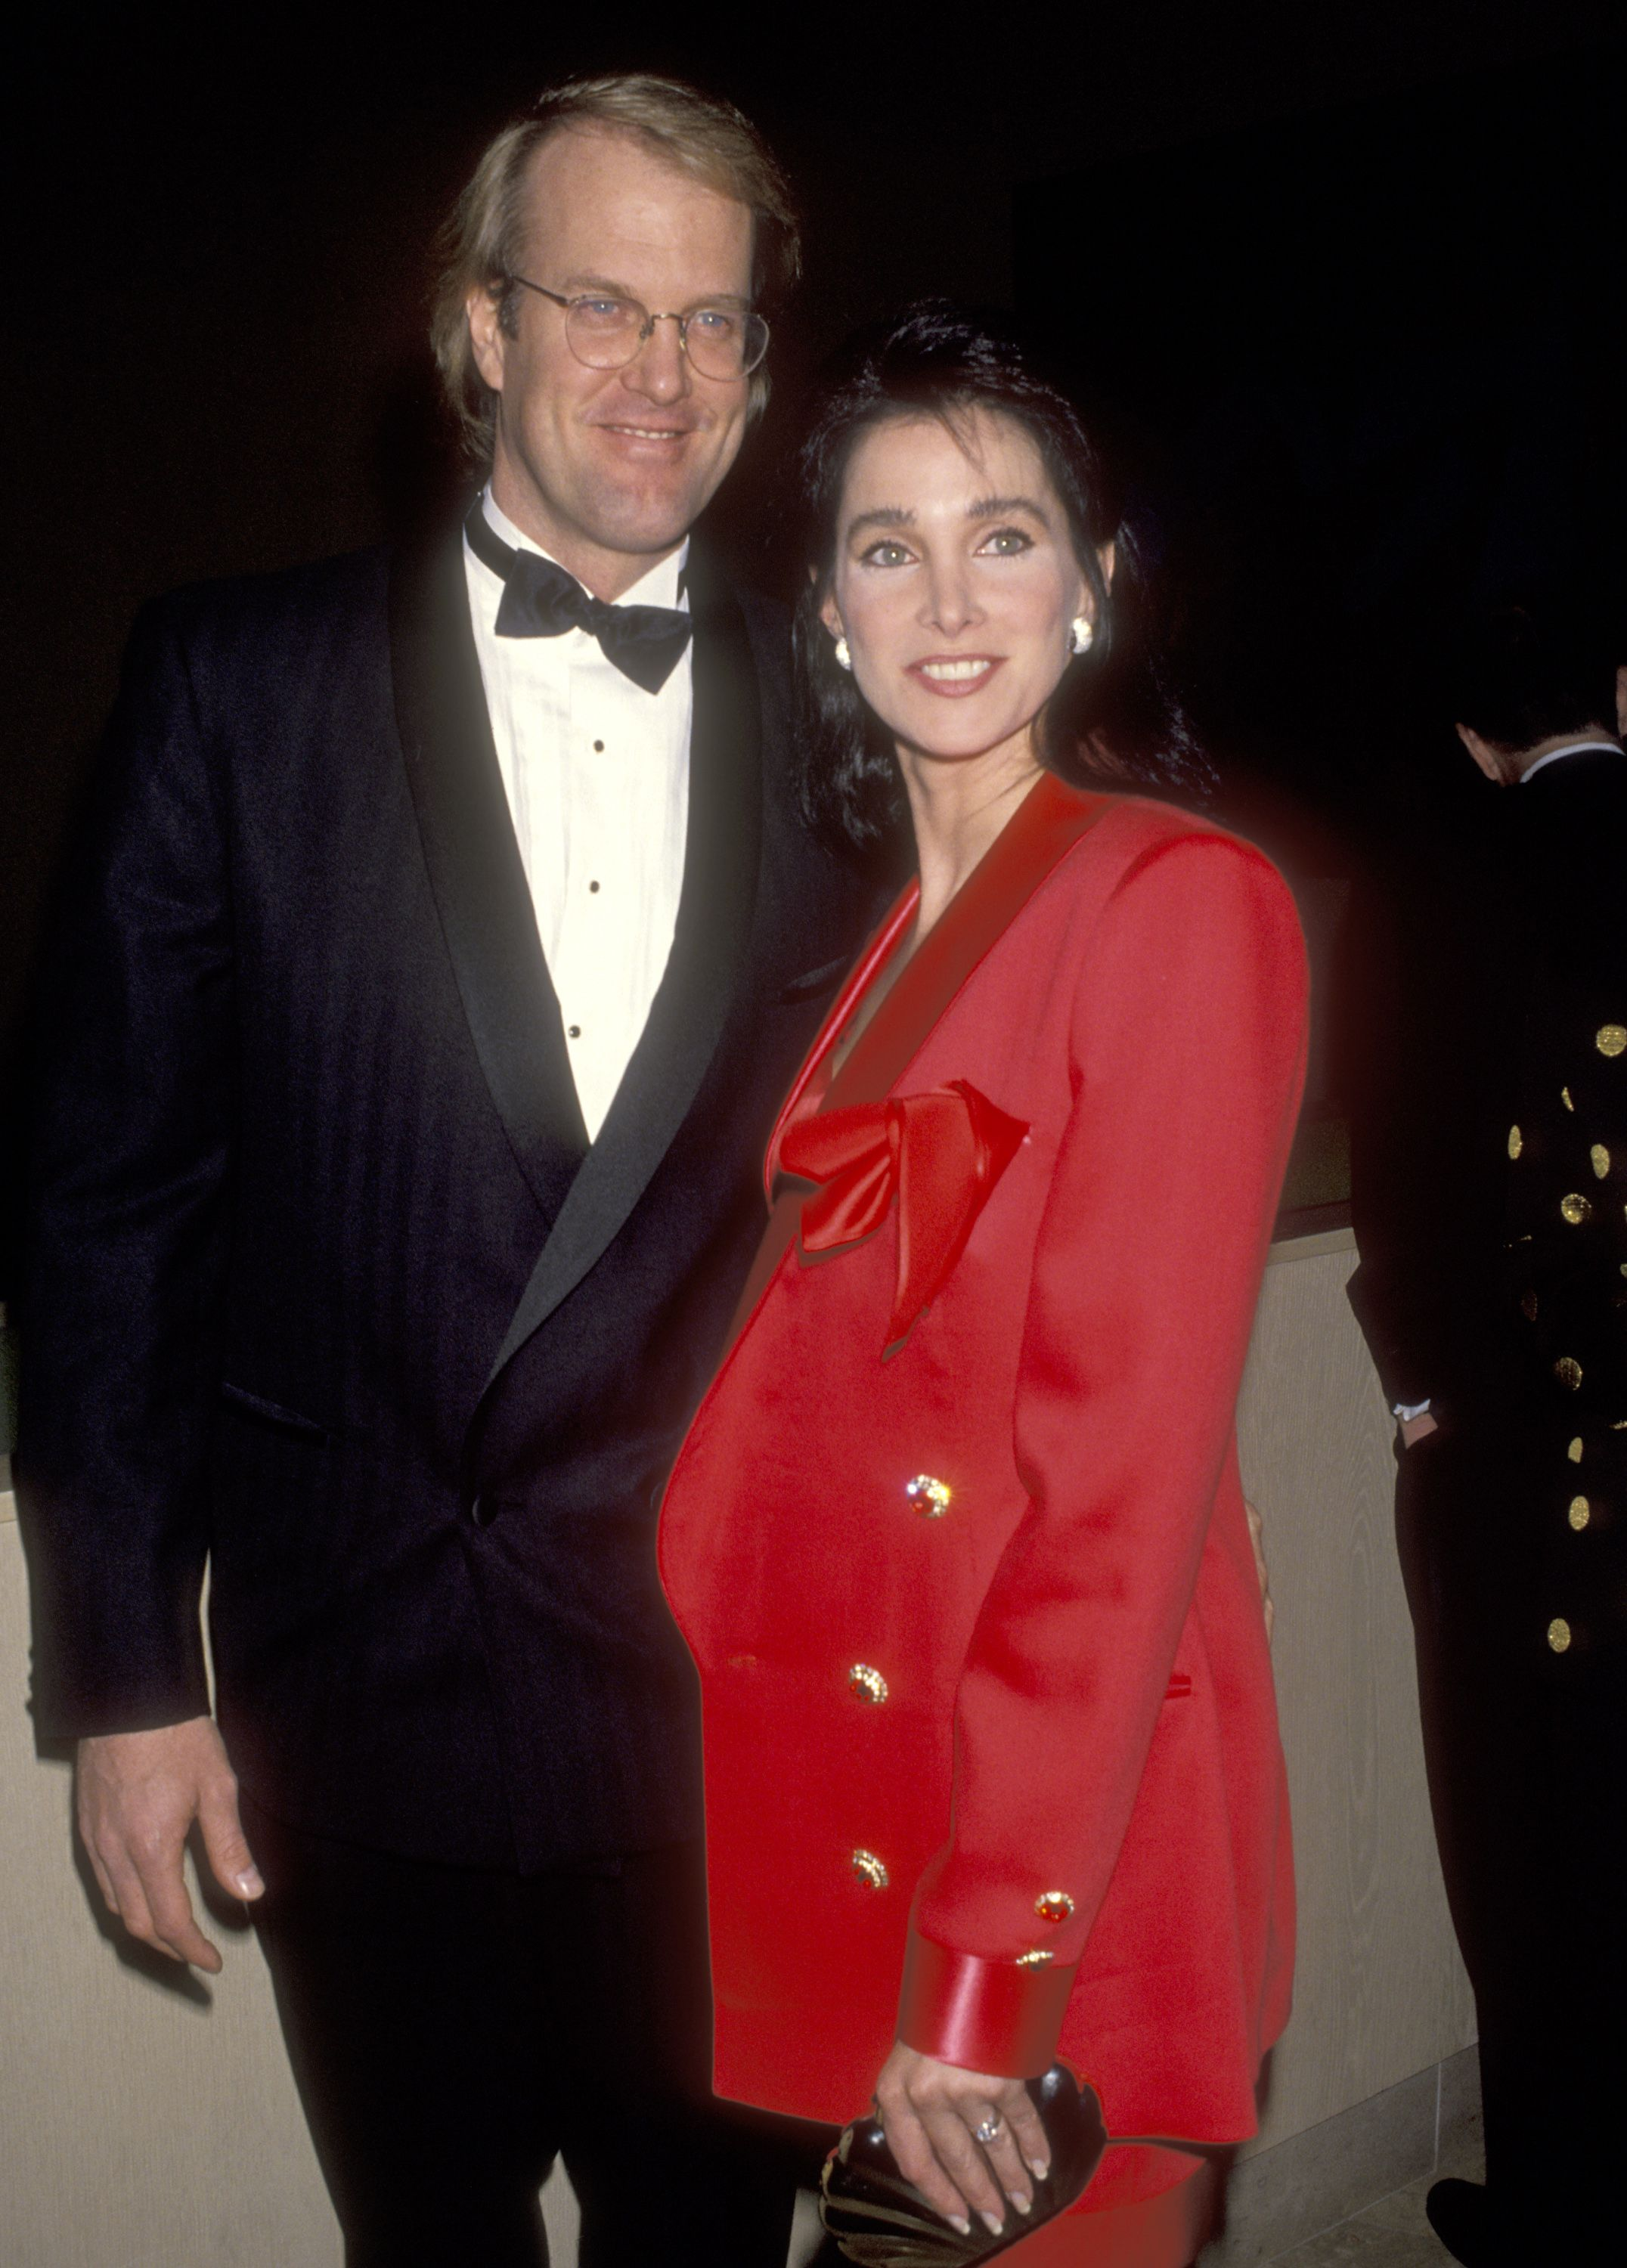 John Tesh and Connie Sellecca attend the American Friends of The Hebrew University's Scopus Award on January 30, 1993 in Beverly Hills, California   Photo: Getty Images